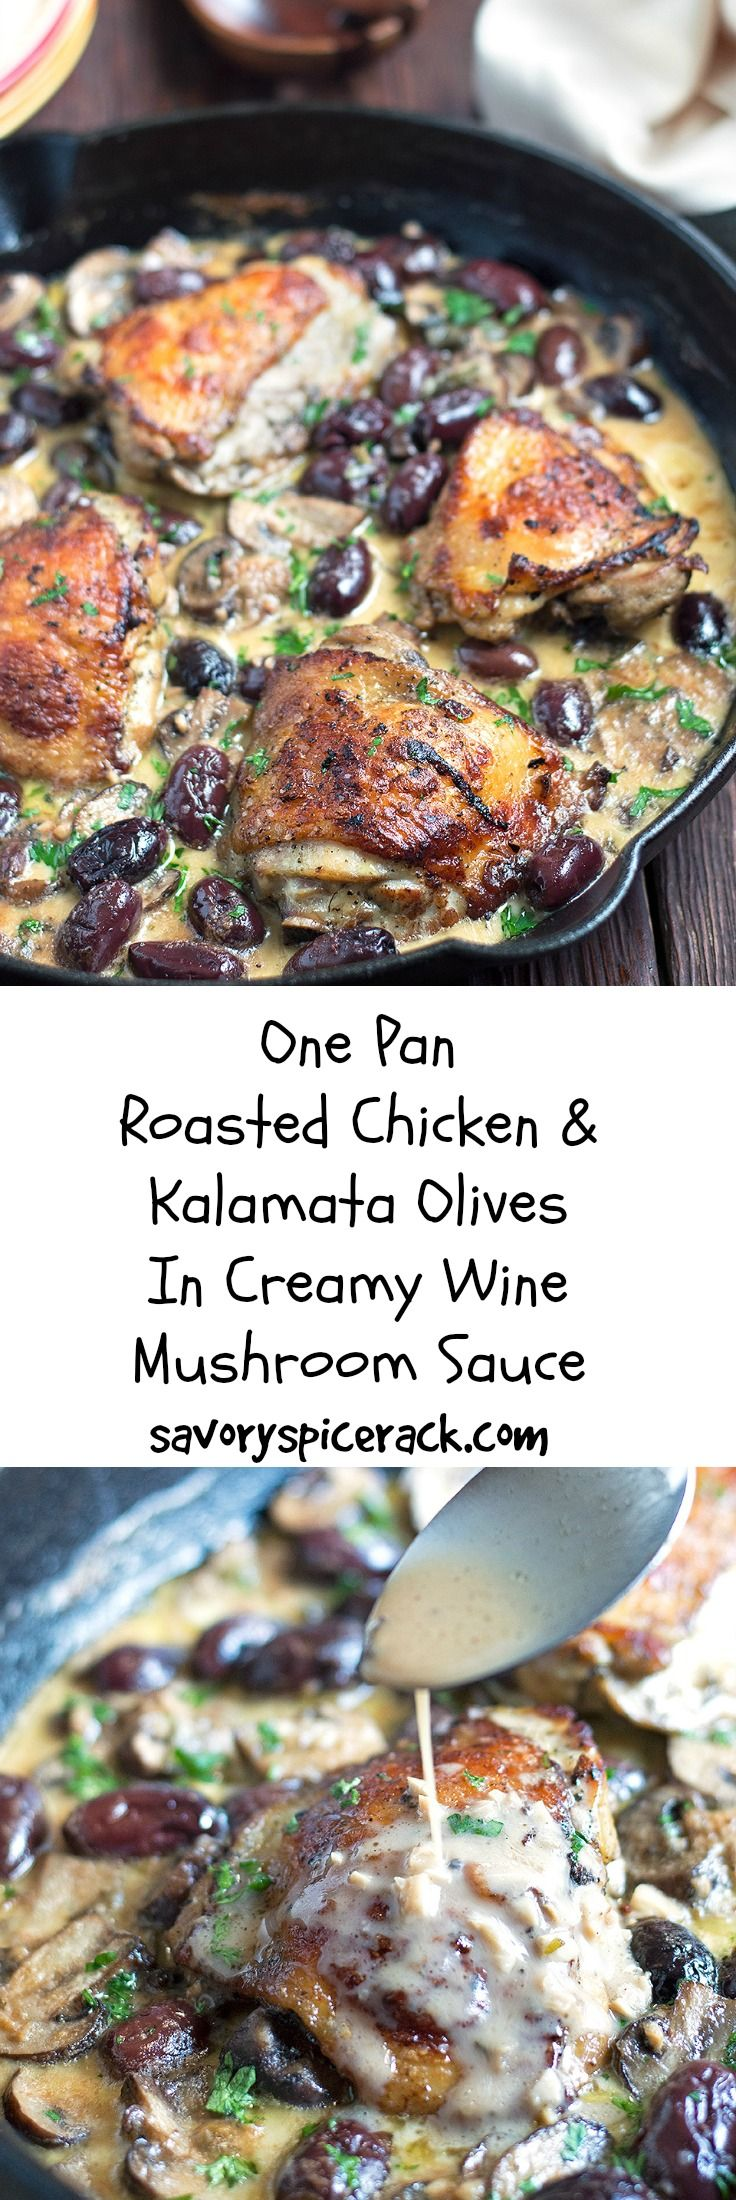 Marinated Roasted Chicken in a Wine Mushroom Cream Sauce Topped with Kalamata…